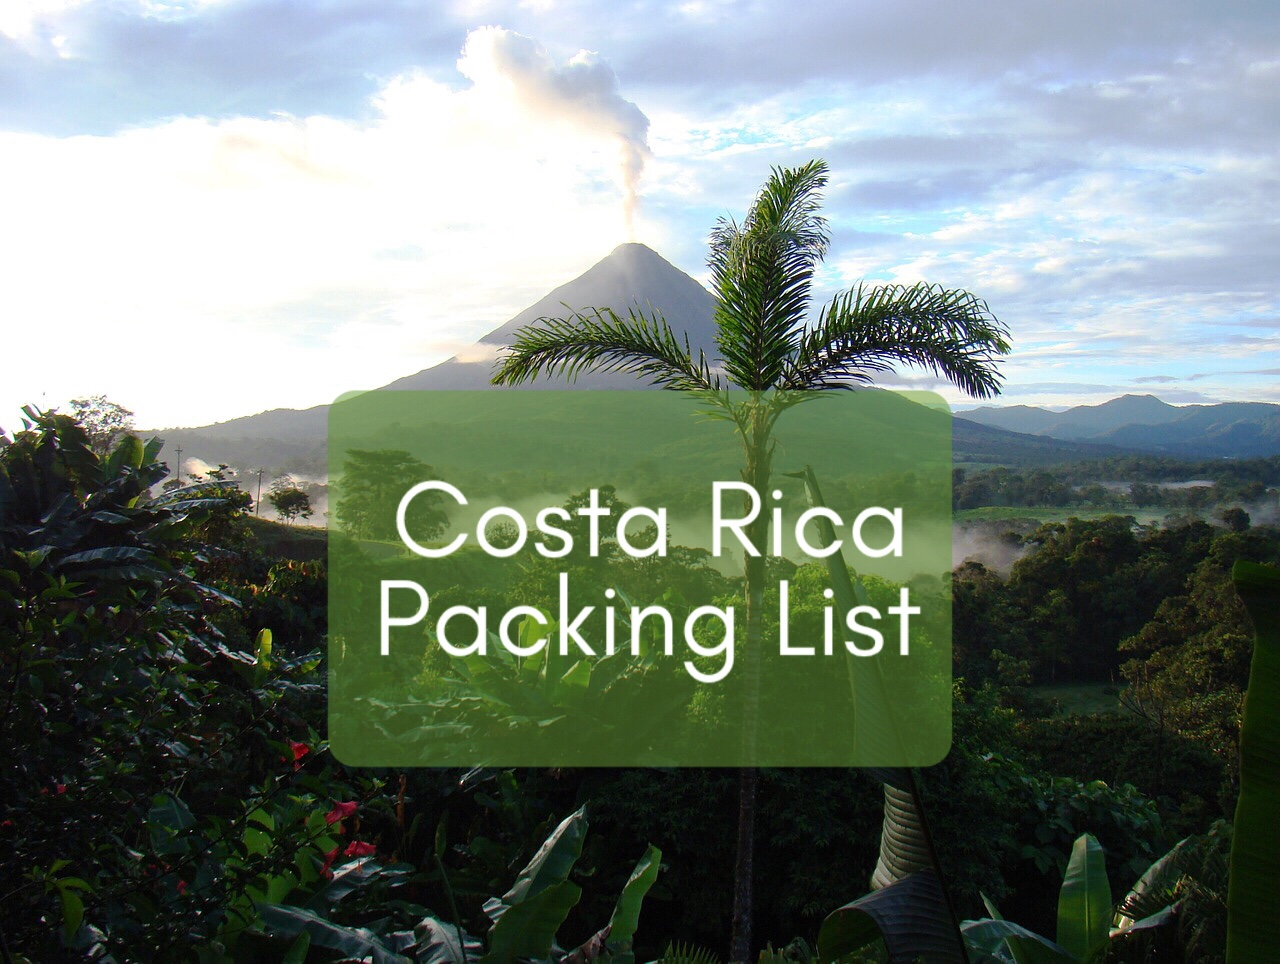 Costa Rica Packing List: An Essential Guide